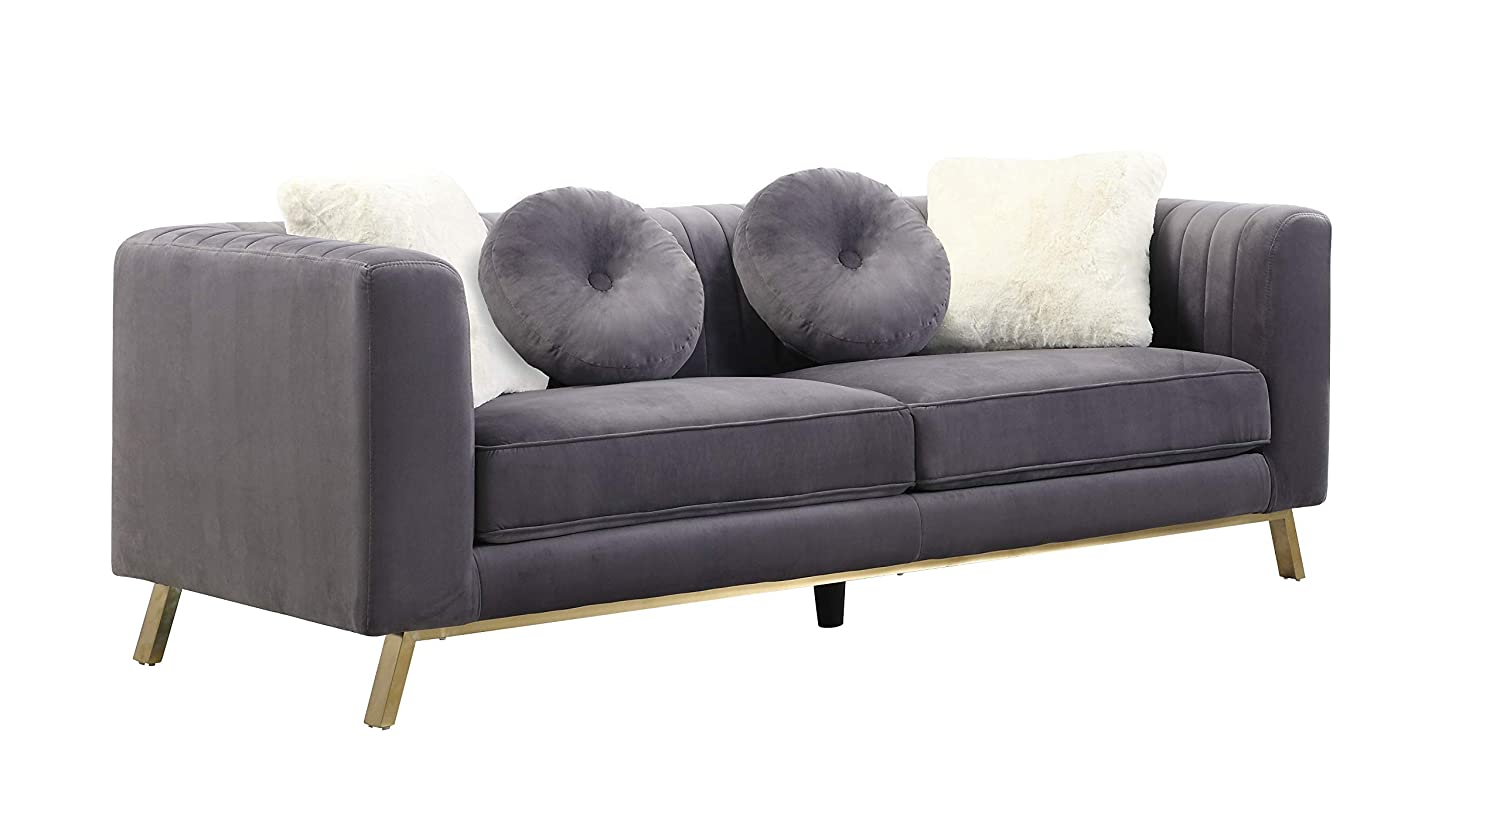 Amazon.com: Best Quality Furniture S450-S Sofa Only, Gray ...